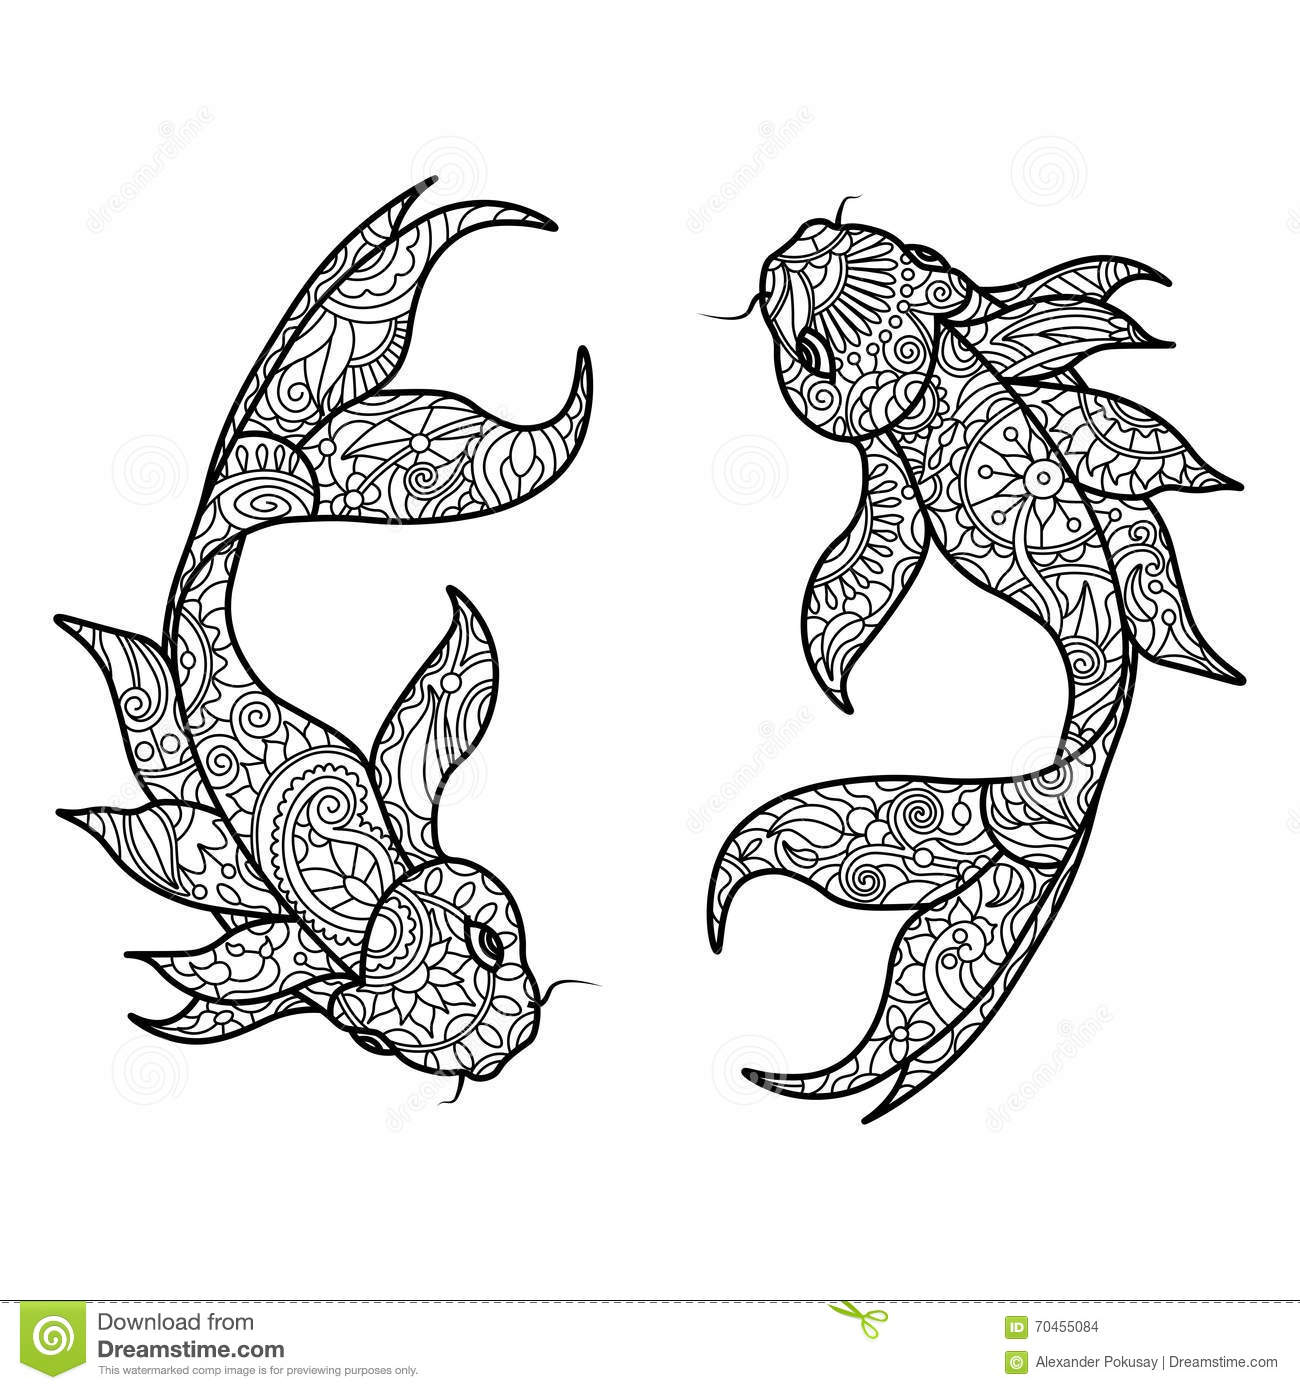 Koi fish coloring pages for adults coloring pages - Poisson dessin ...